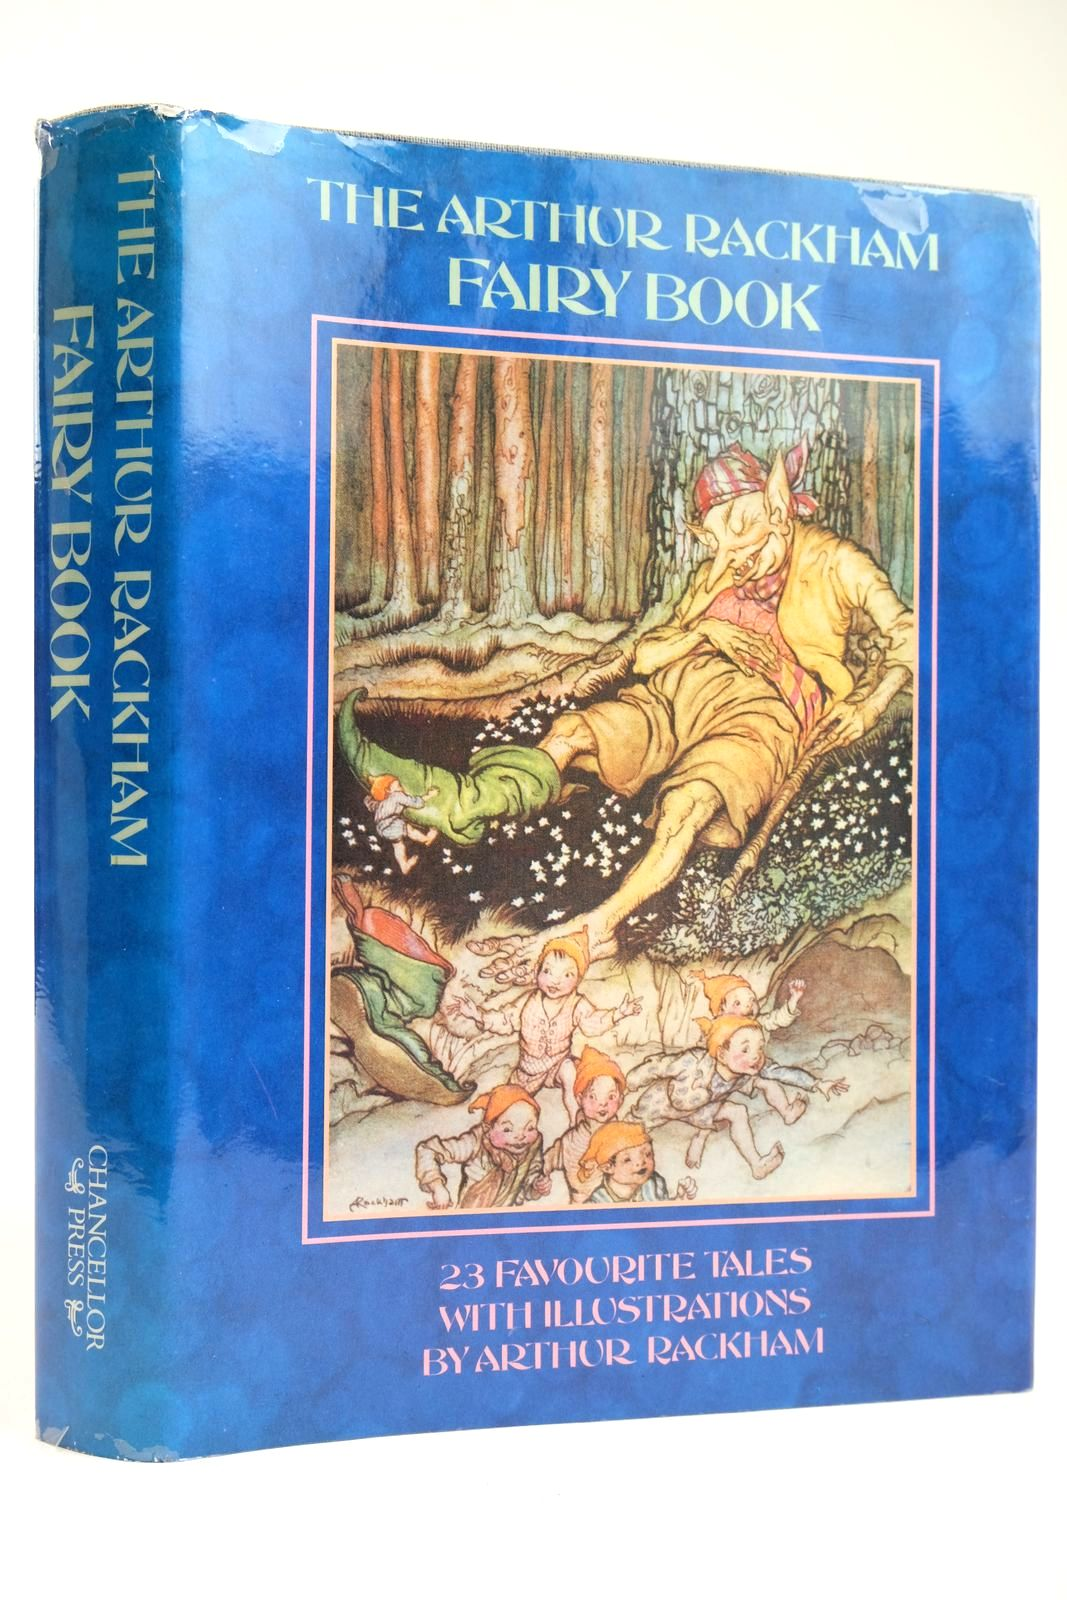 Photo of THE ARTHUR RACKHAM FAIRY BOOK illustrated by Rackham, Arthur published by Chancellor Press (STOCK CODE: 2133568)  for sale by Stella & Rose's Books